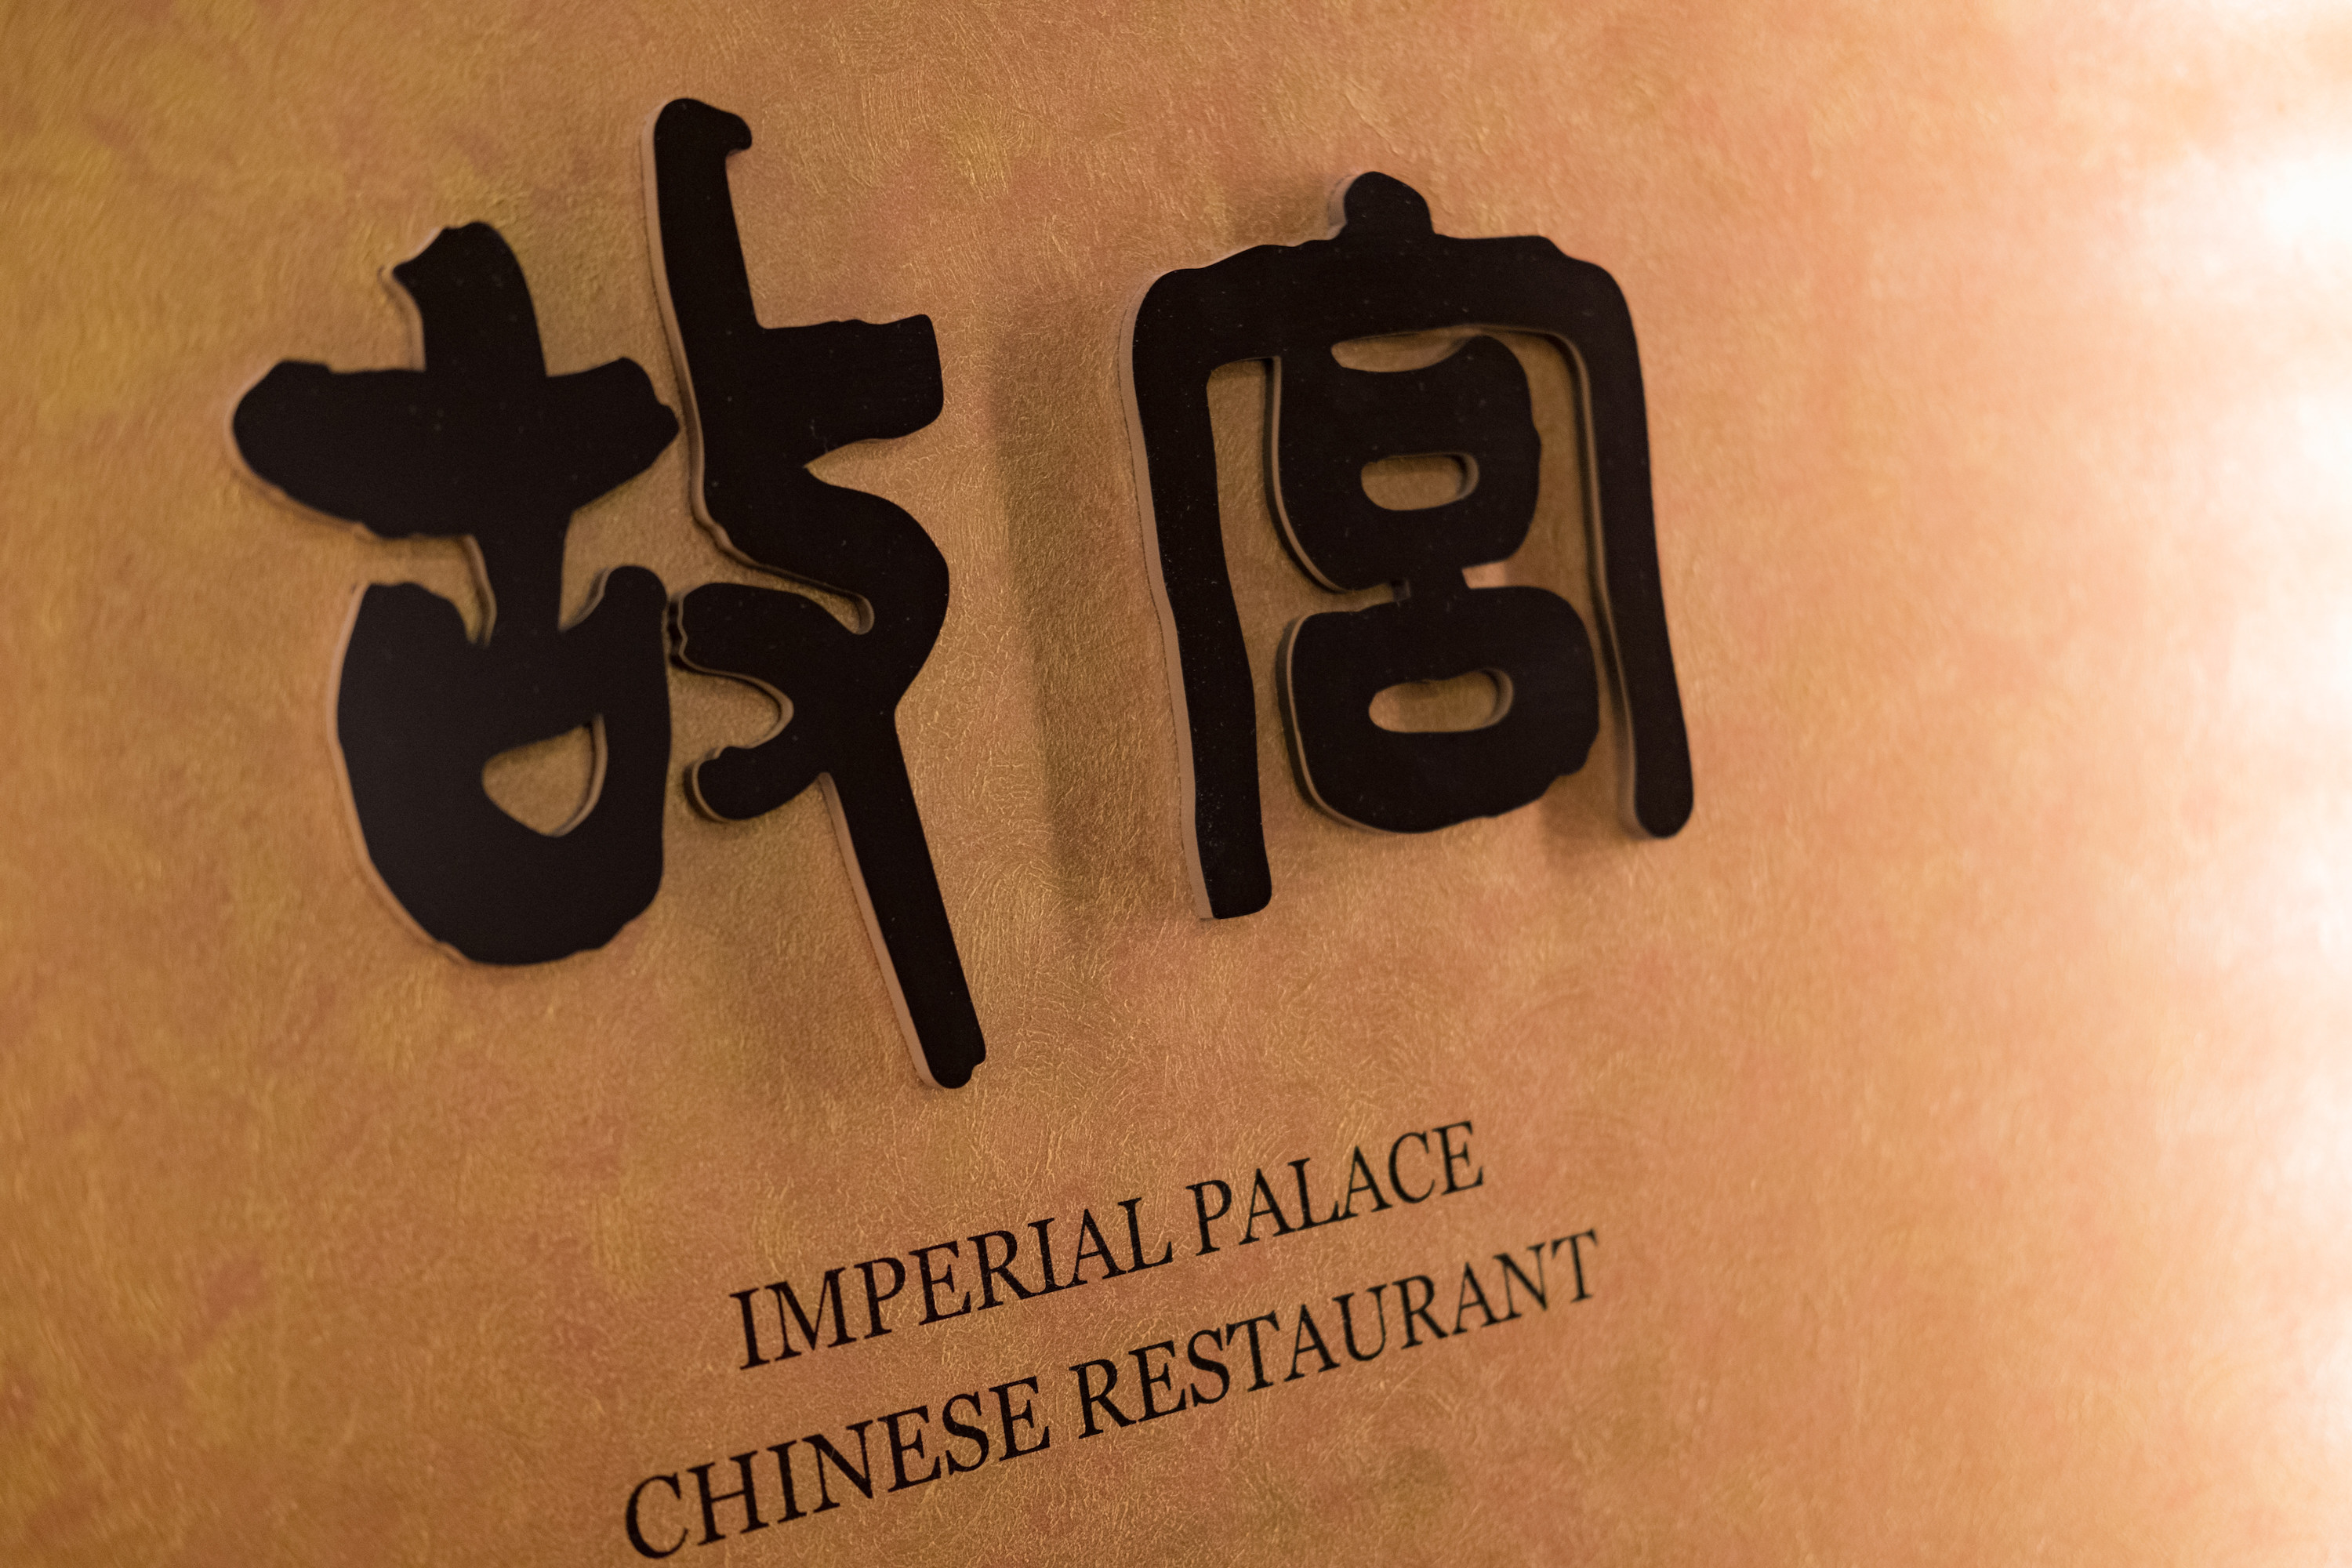 Chinese Restaurant Imperial Palace appearance